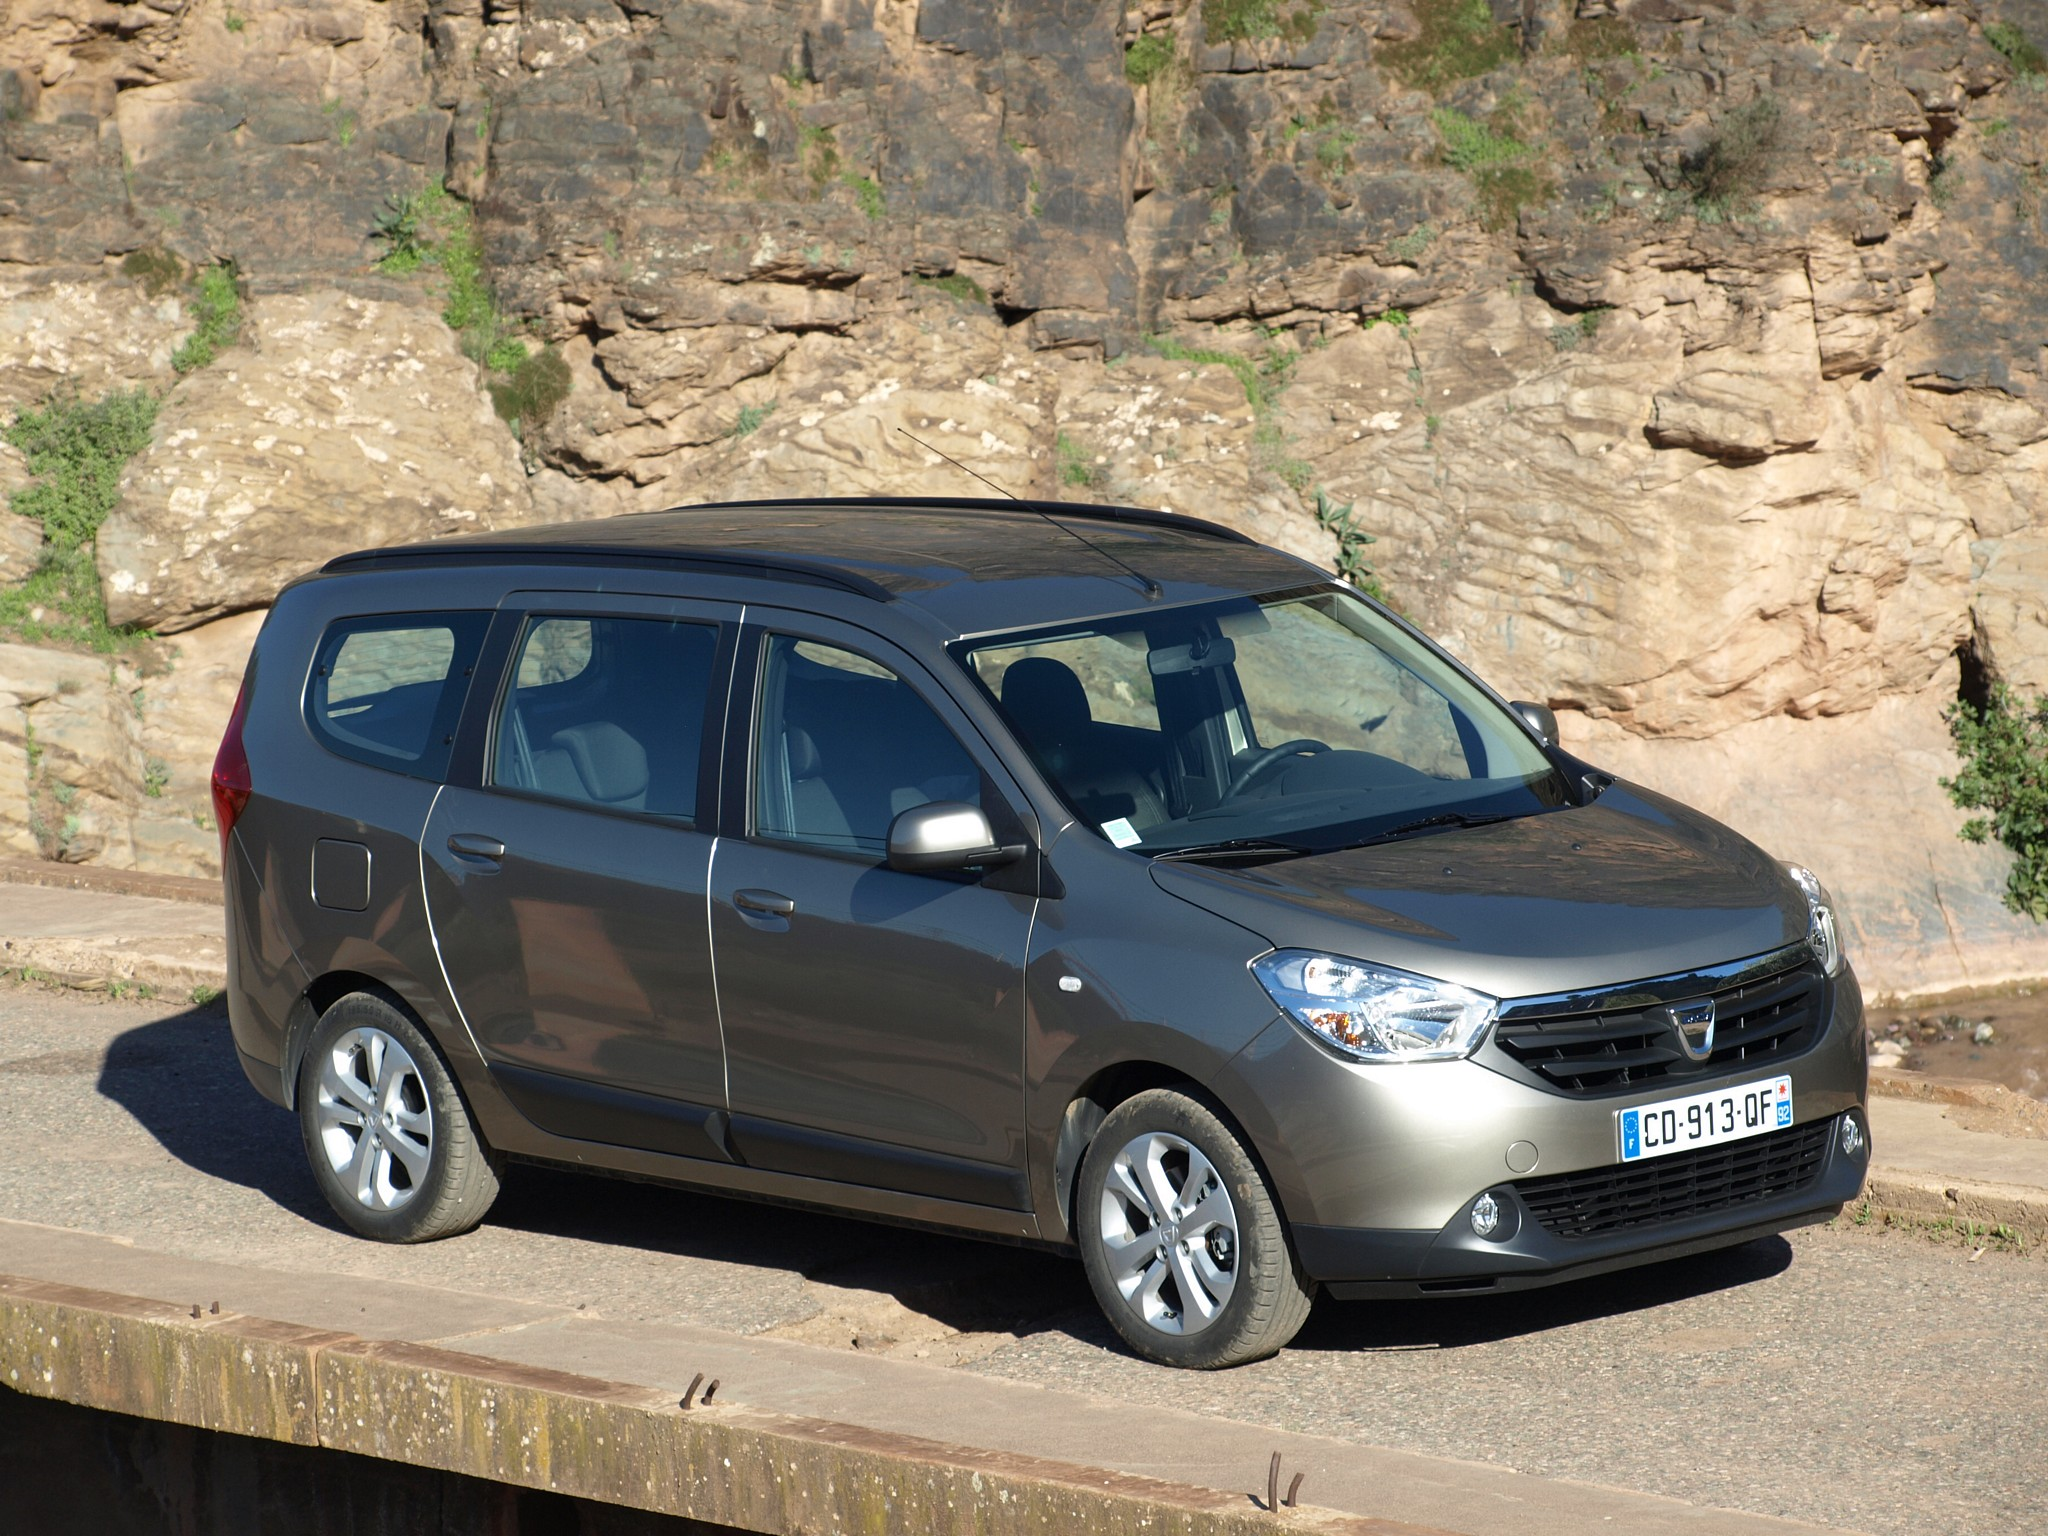 dacia lodgy specs photos 2012 2013 2014 2015 2016 2017 2018 2019 autoevolution. Black Bedroom Furniture Sets. Home Design Ideas